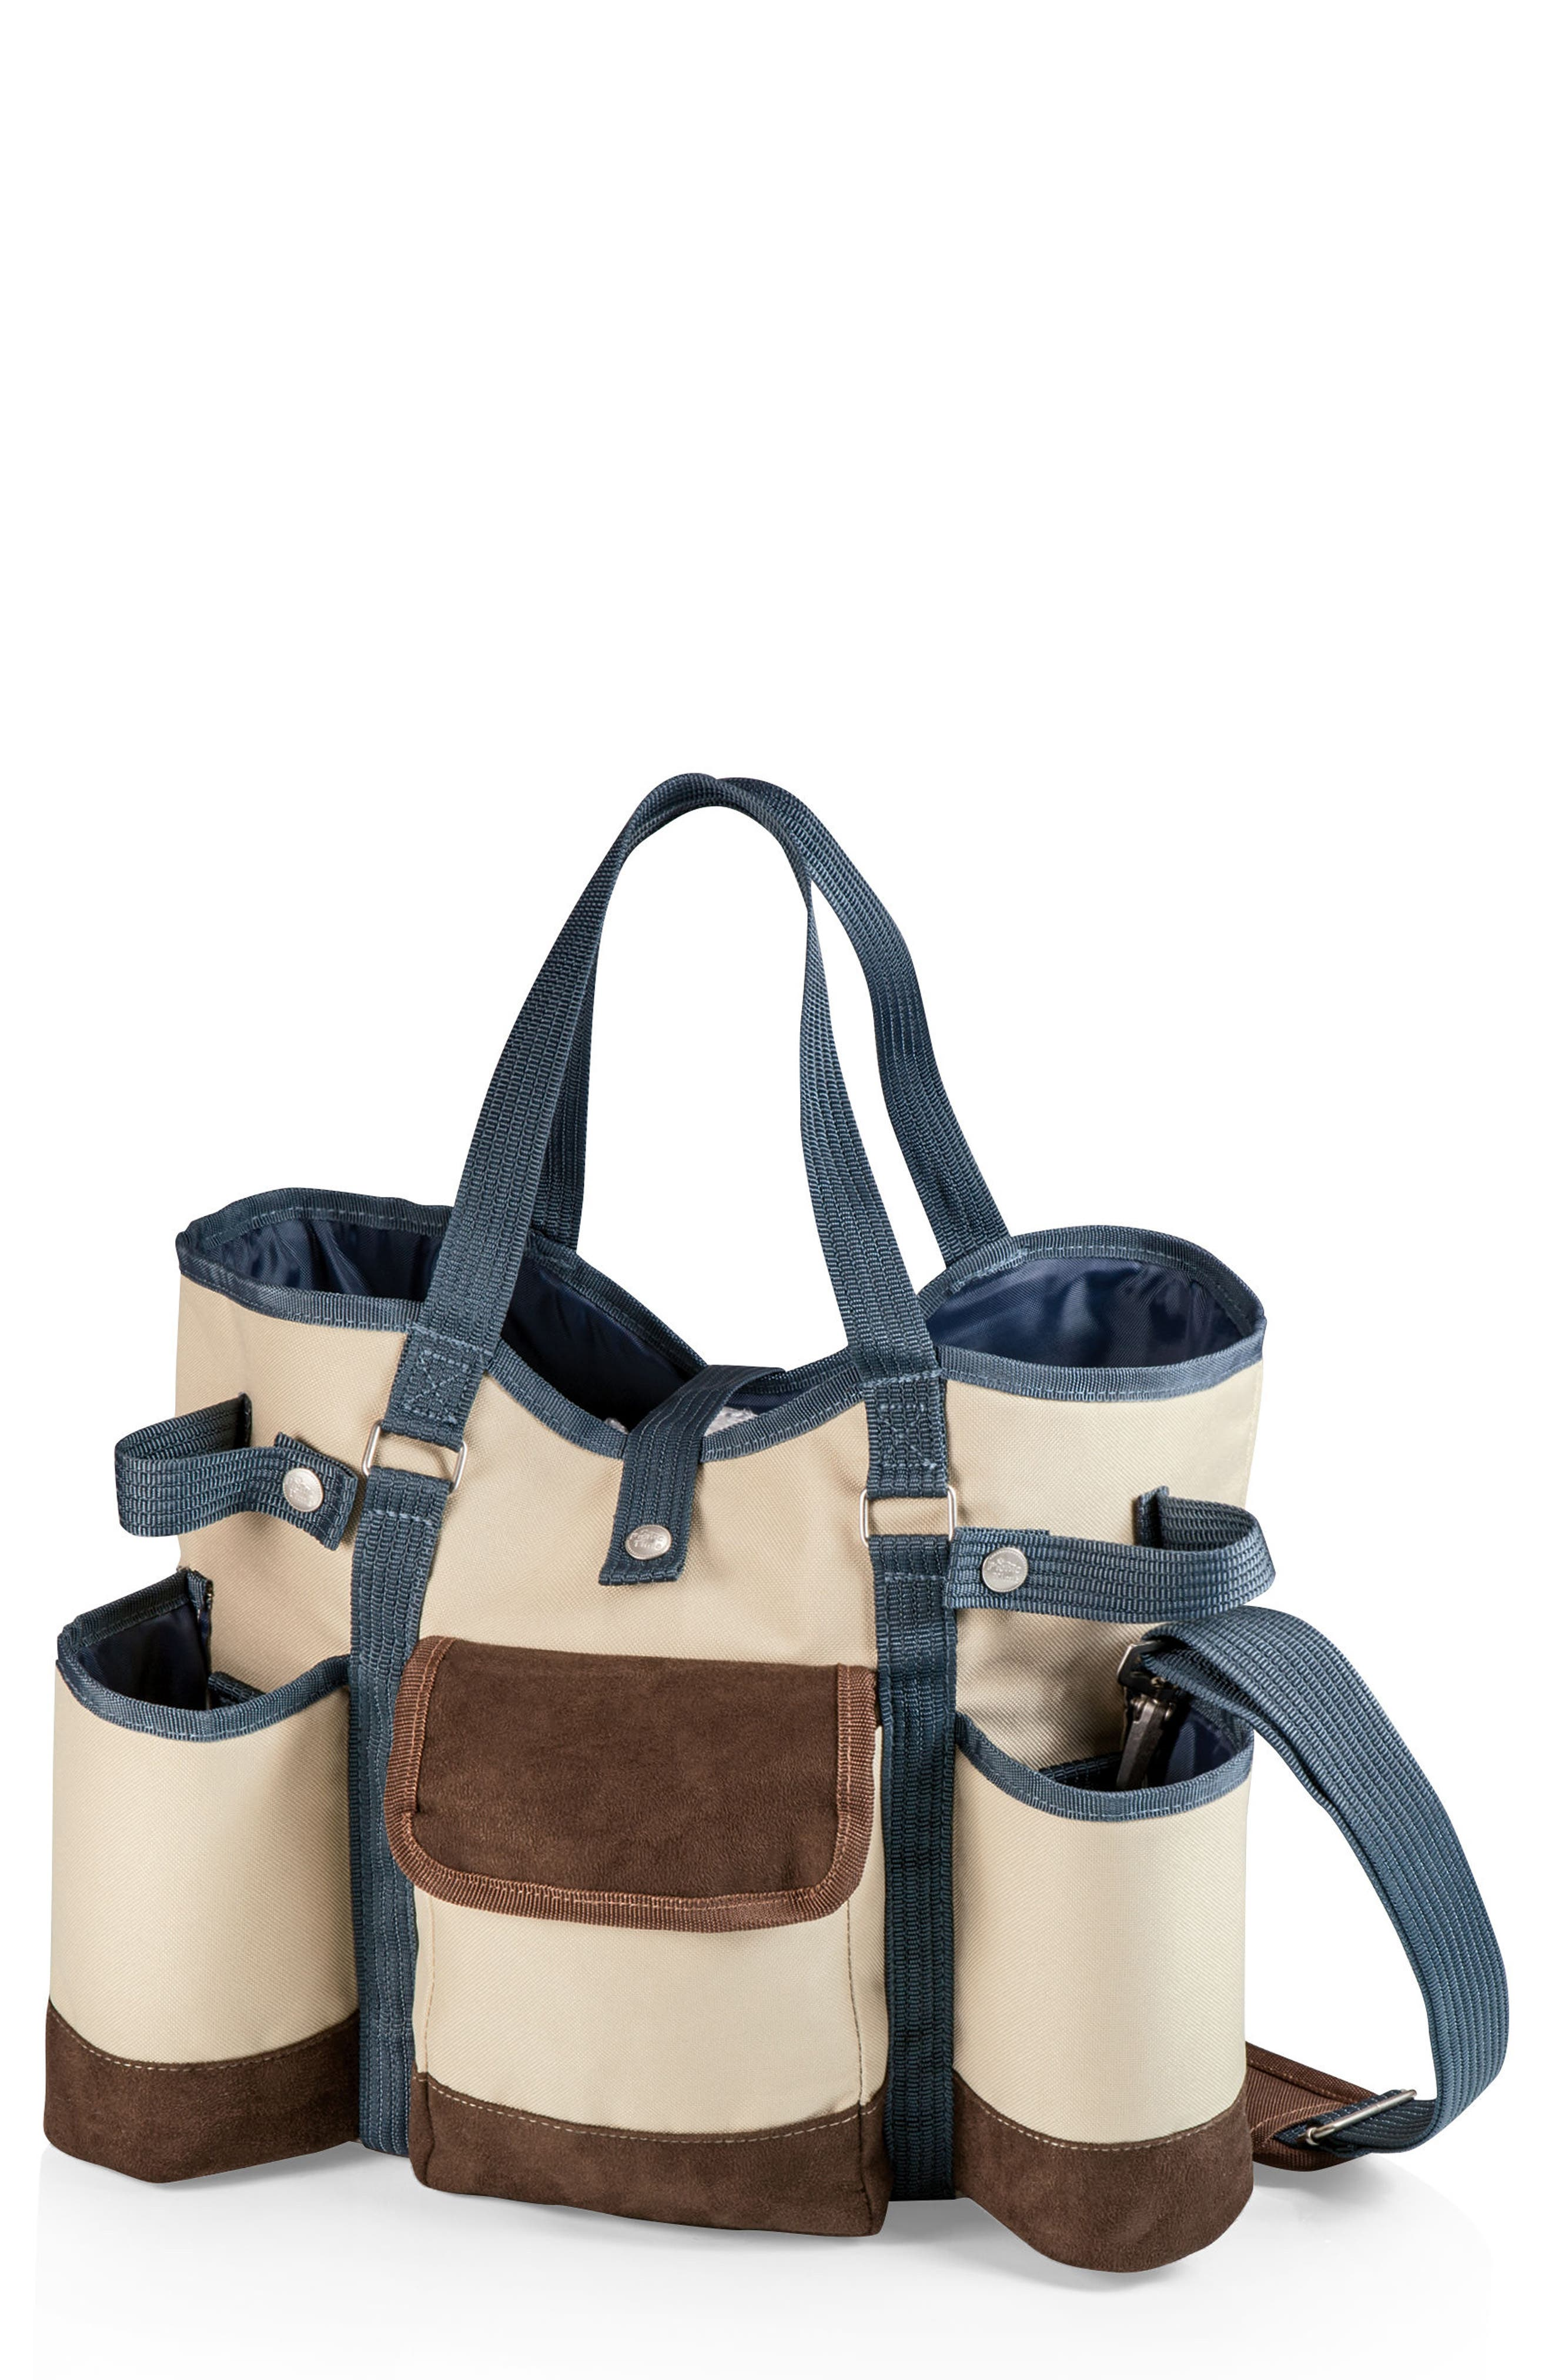 Wine Country Wine & Cheese Tote,                             Main thumbnail 1, color,                             Tan